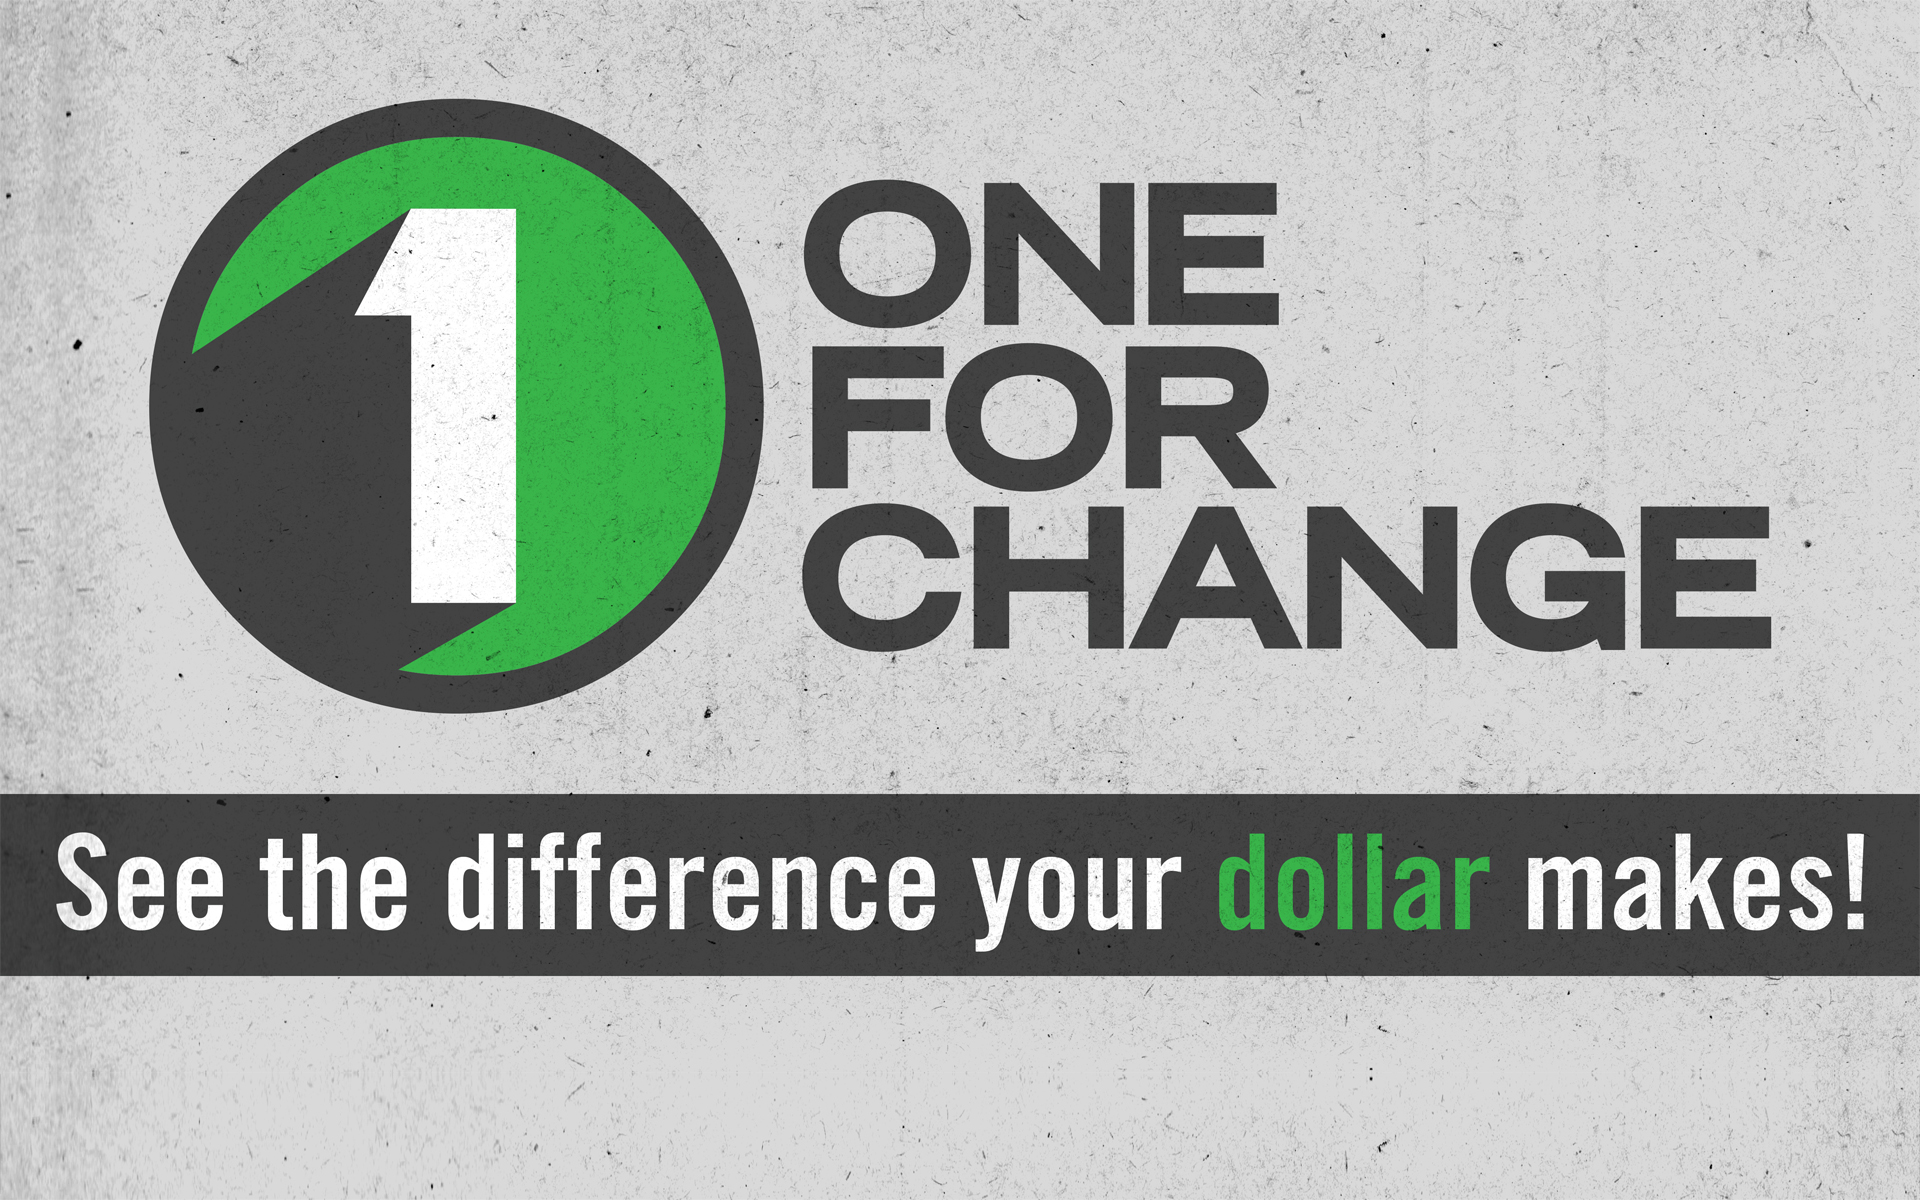 One for Change